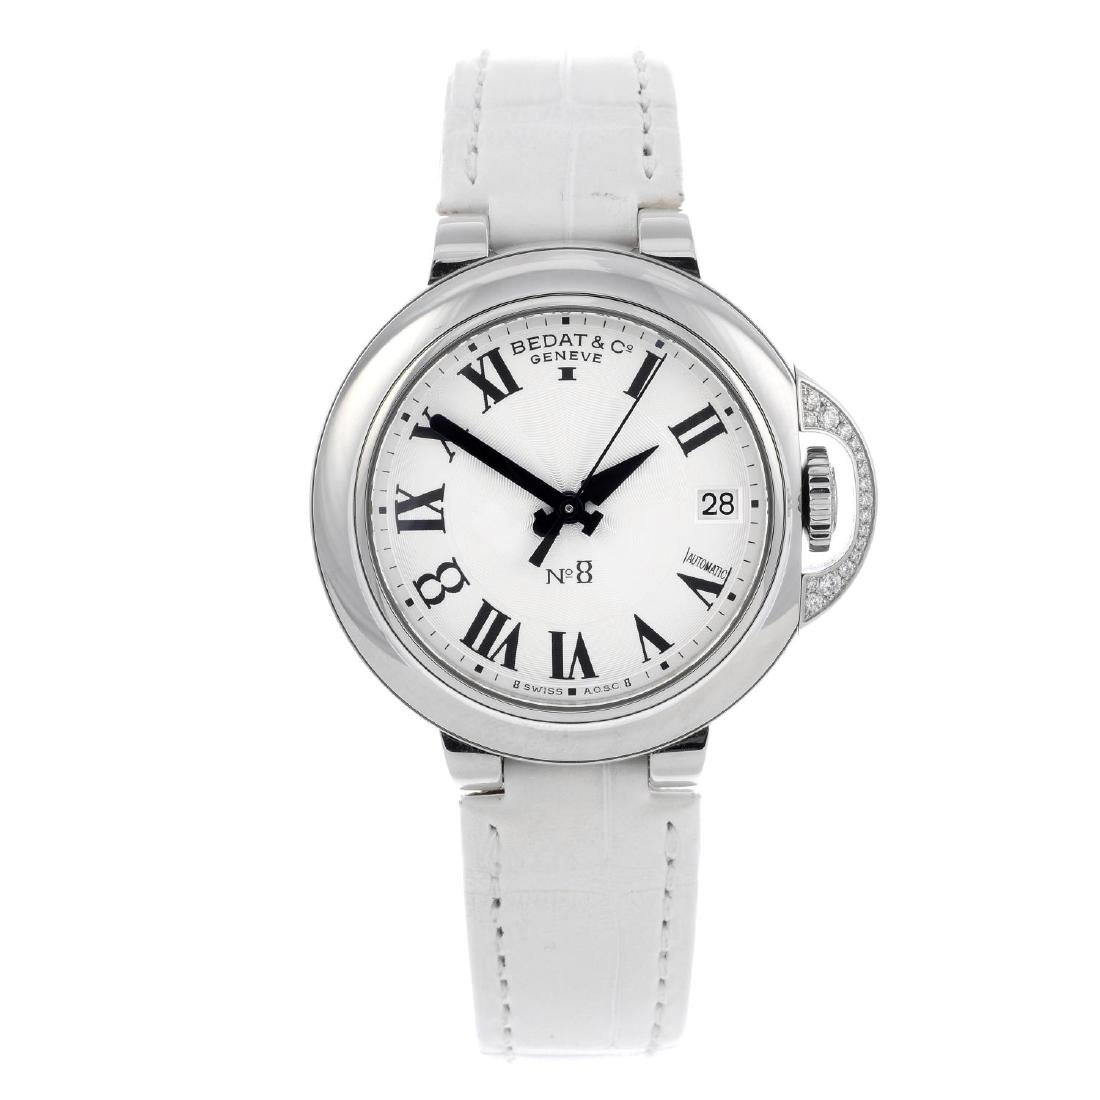 BEDAT & CO. - a mid-size No. 8 wrist watch. Stainless